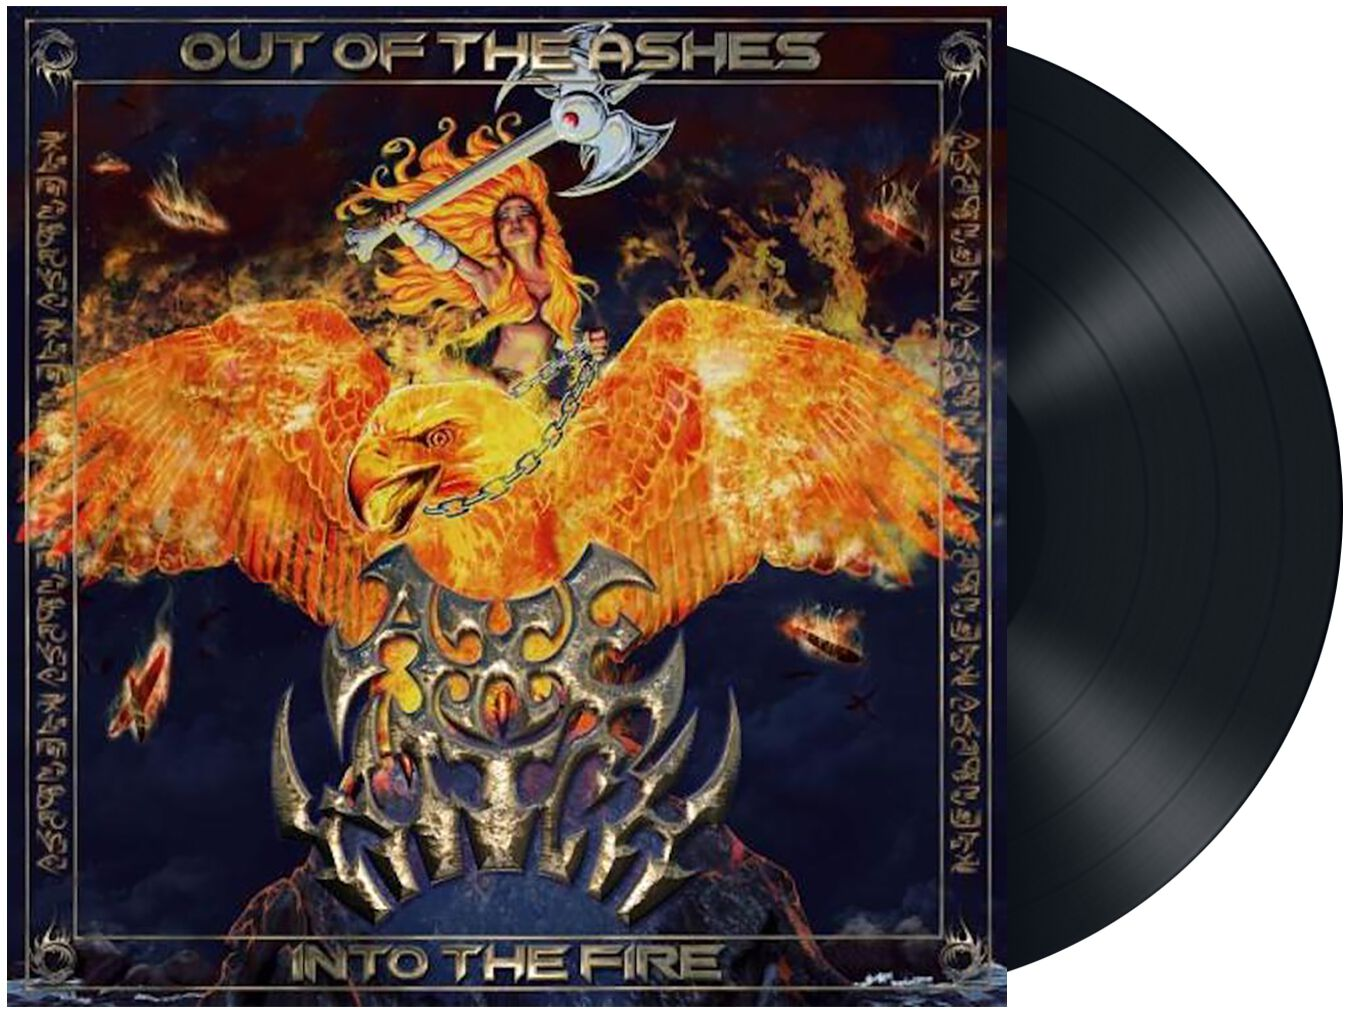 Image of Axewitch Out of the ashes into the fire LP Standard